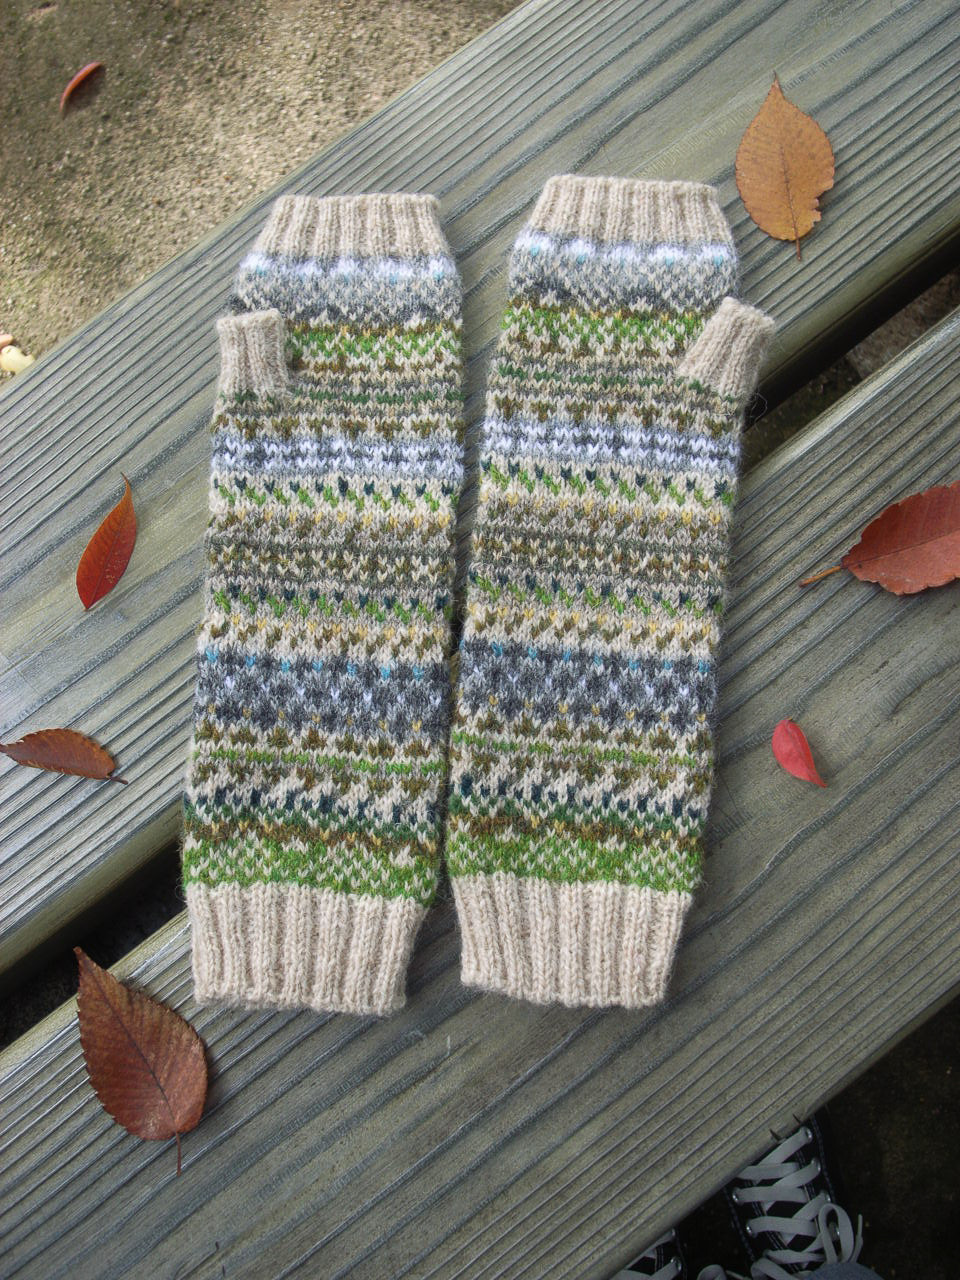 A glorious translation of stone walls into knitted mitts, designed by Yumi